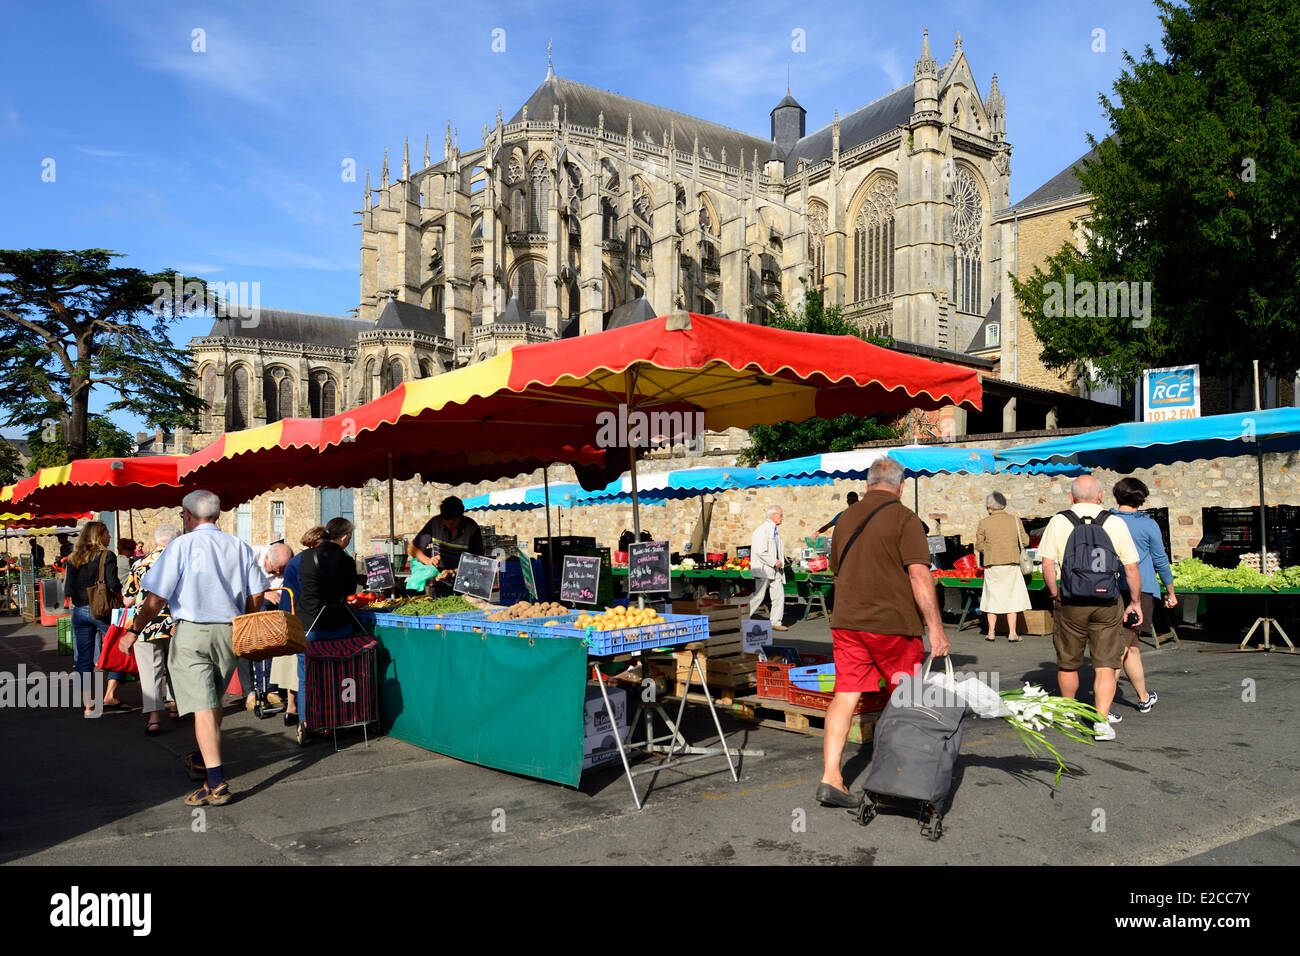 France, Sarthe, Le Mans,Cite Plantagenet (Old Town), market day in front of the Saint Julien cathedral Stock Photo